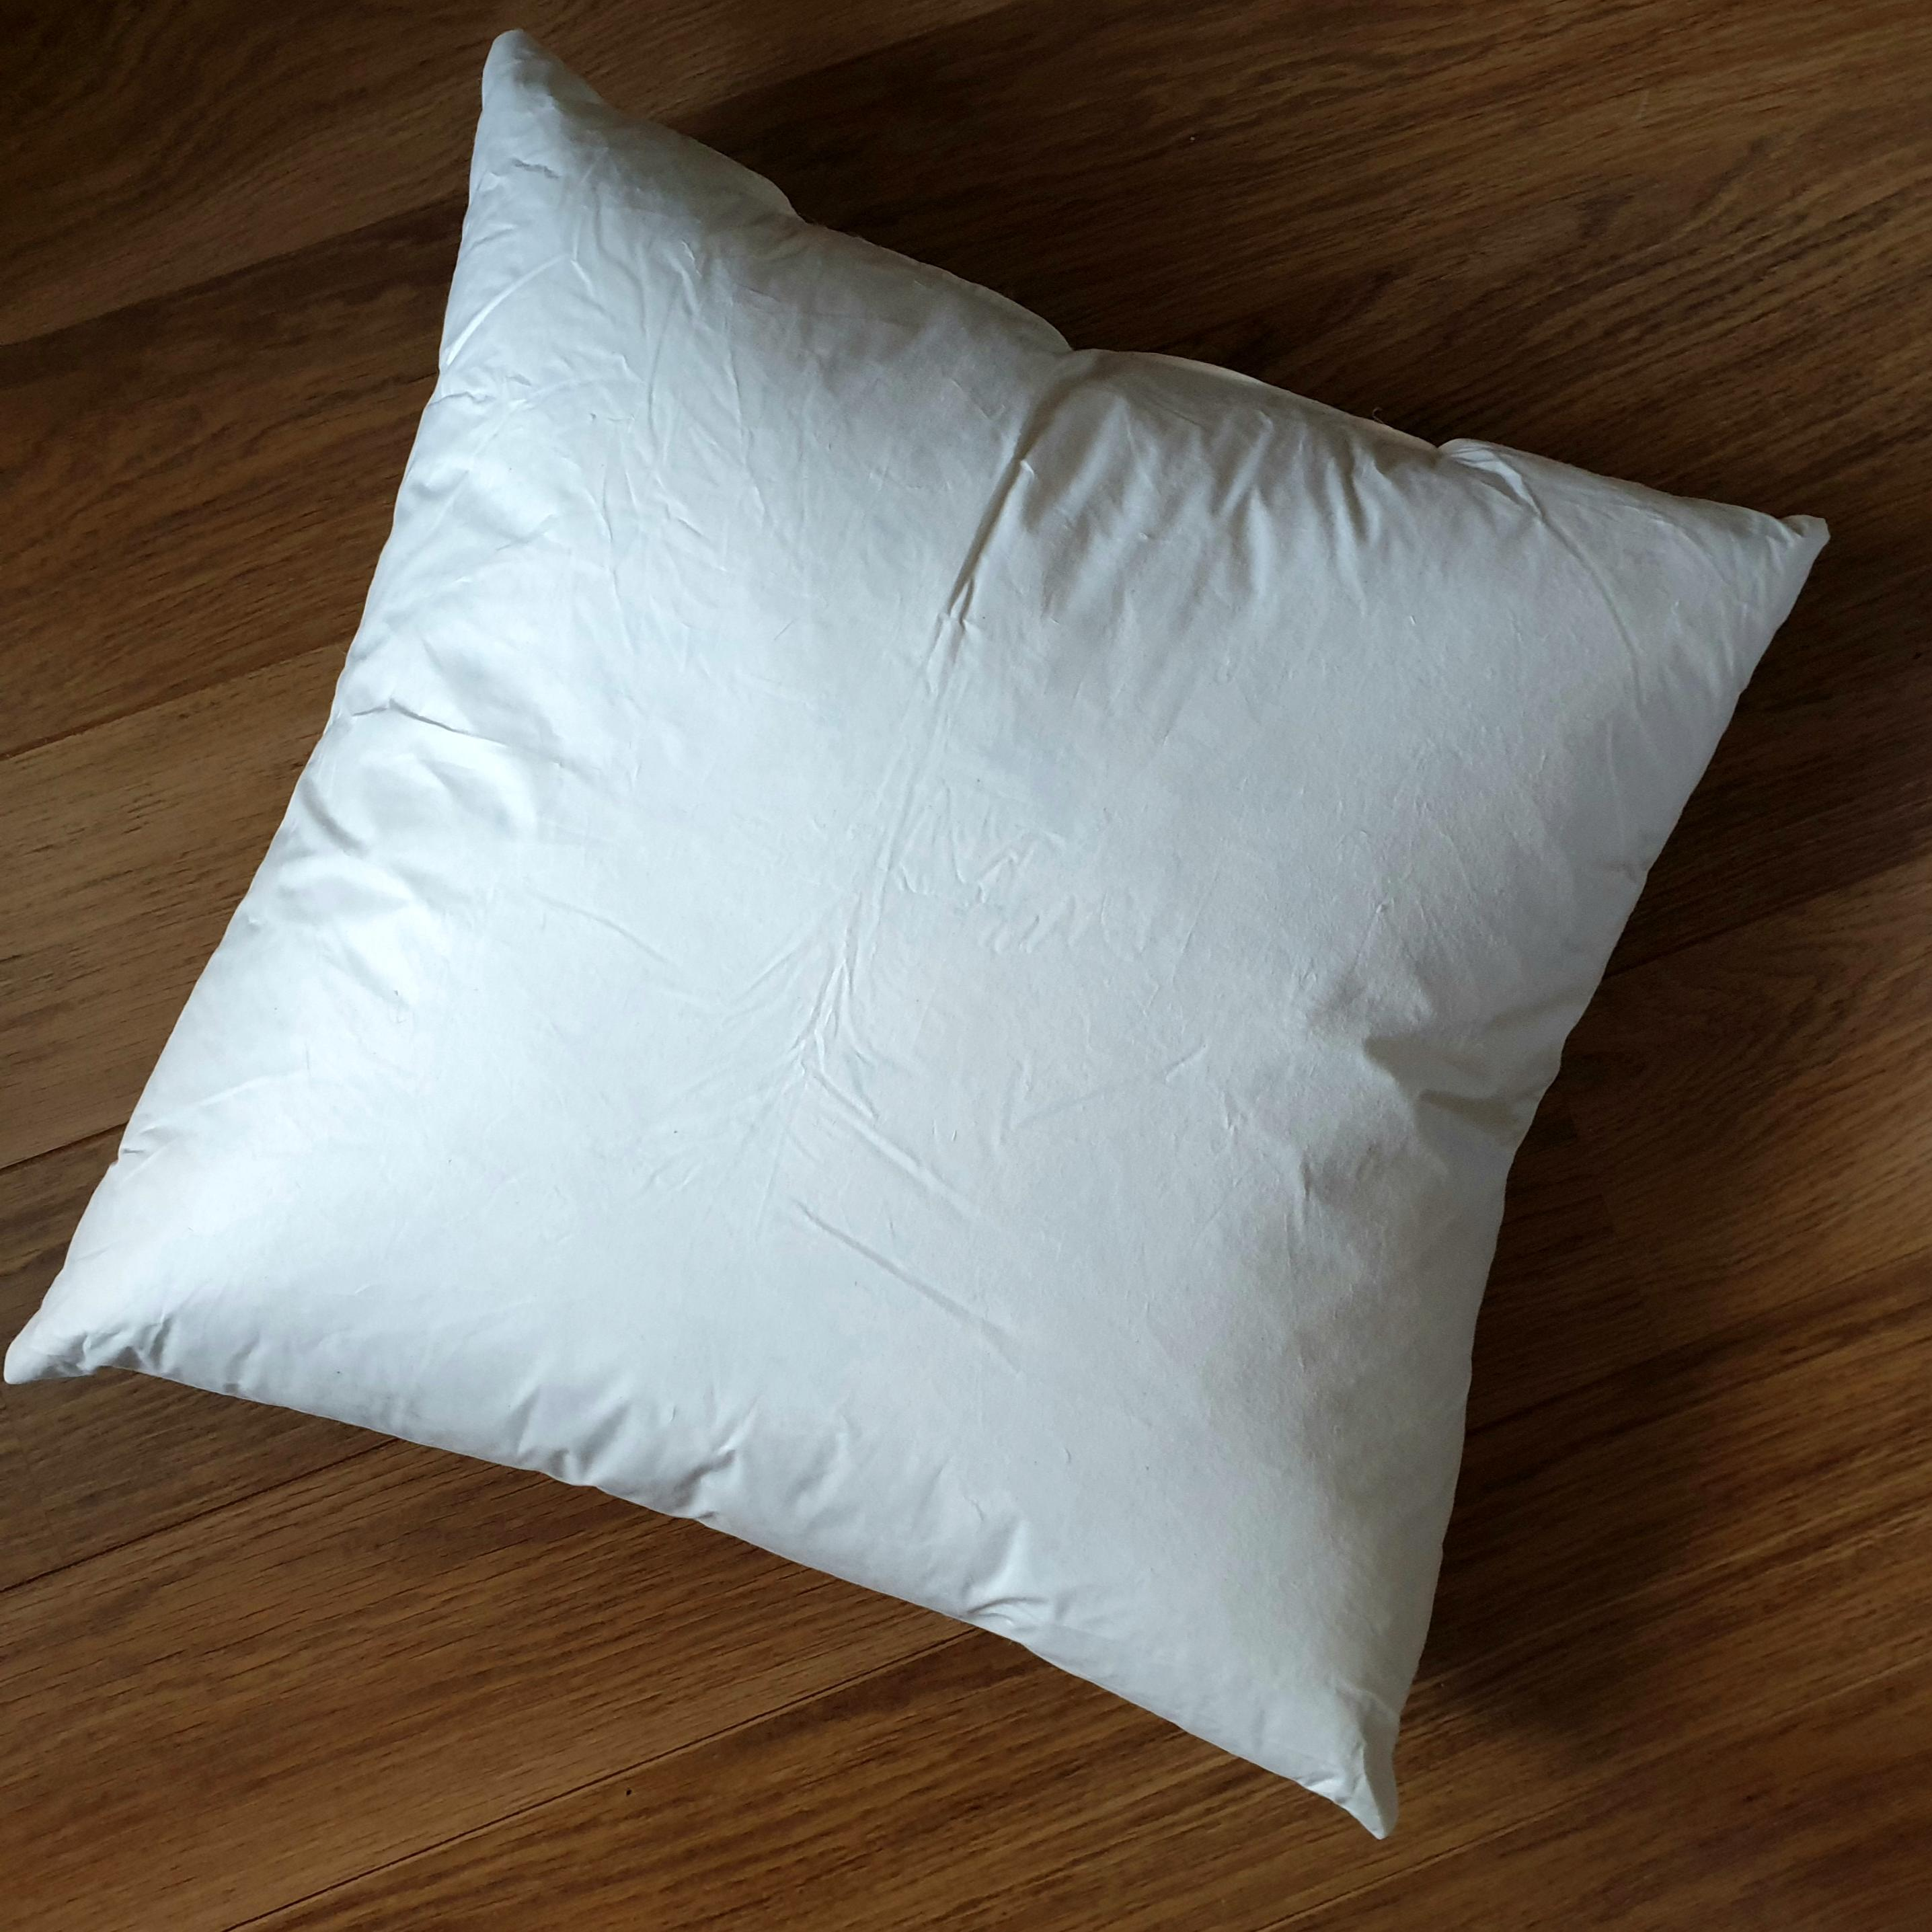 55cm cushion inner pad generously filled with 100% white duck feathers in ecru cream 100% cotton outer cover.